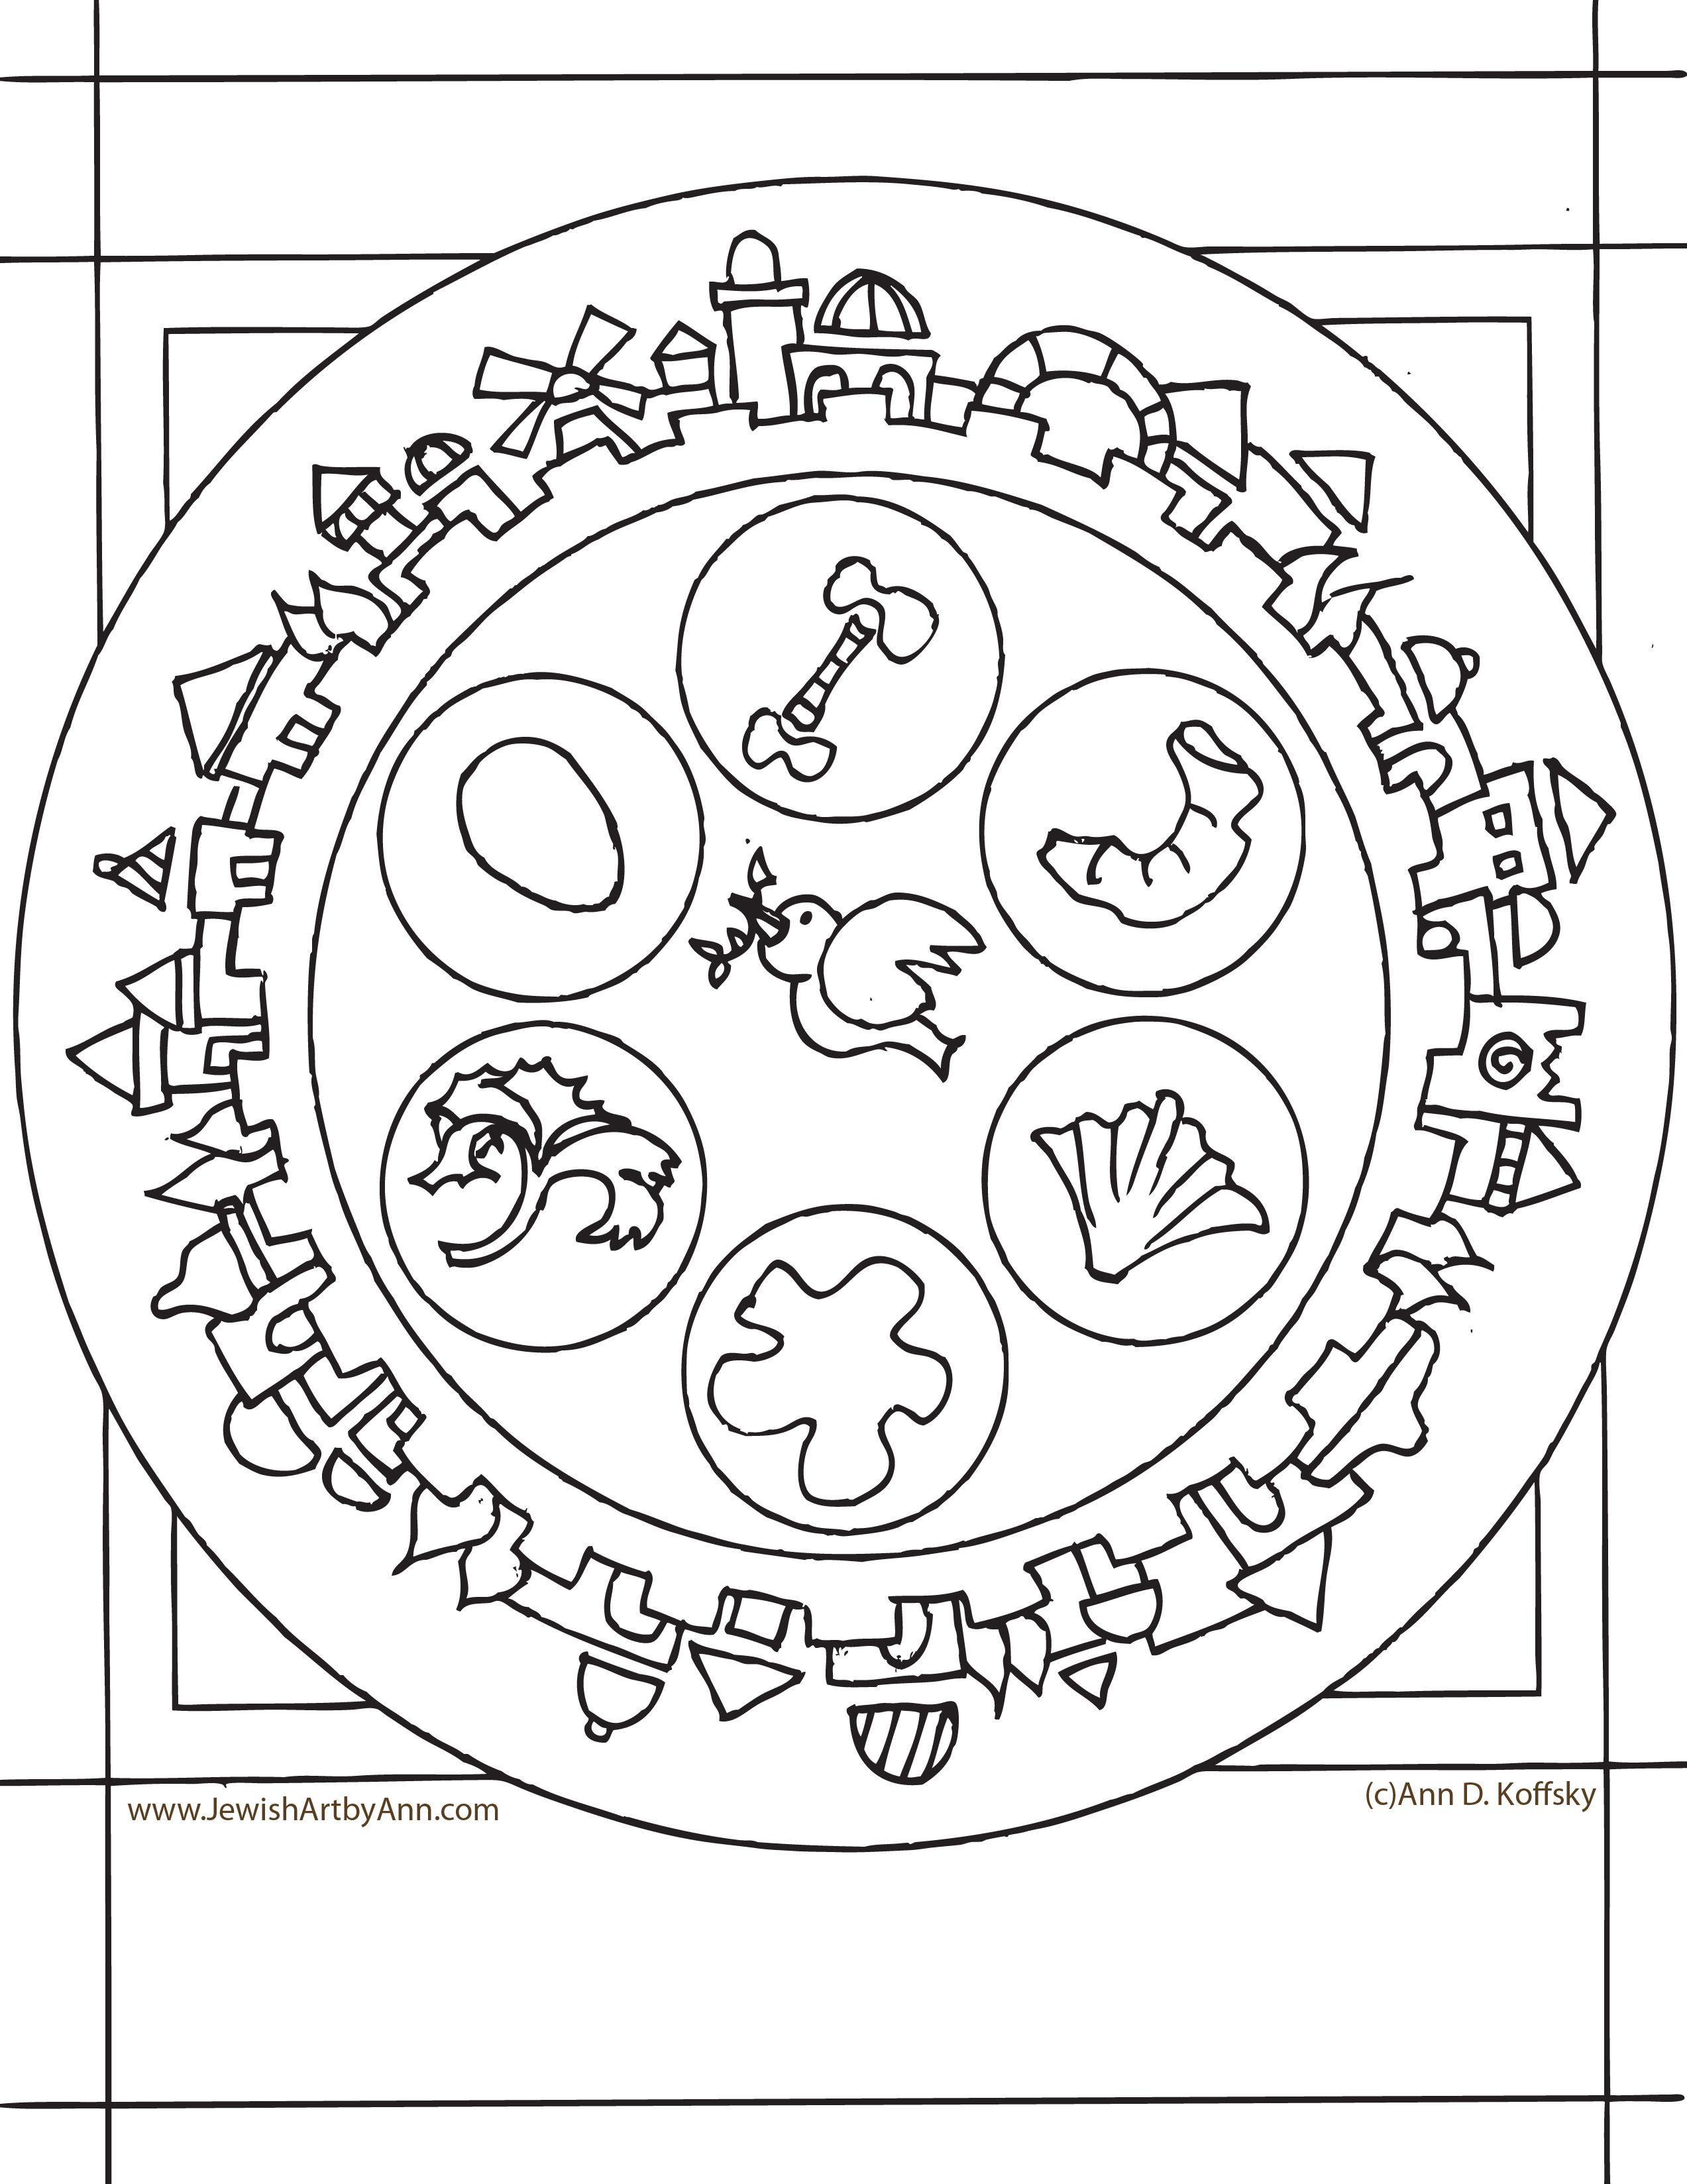 Ann Koffsky Passover Plate Coloring Page Passover Passover Seder